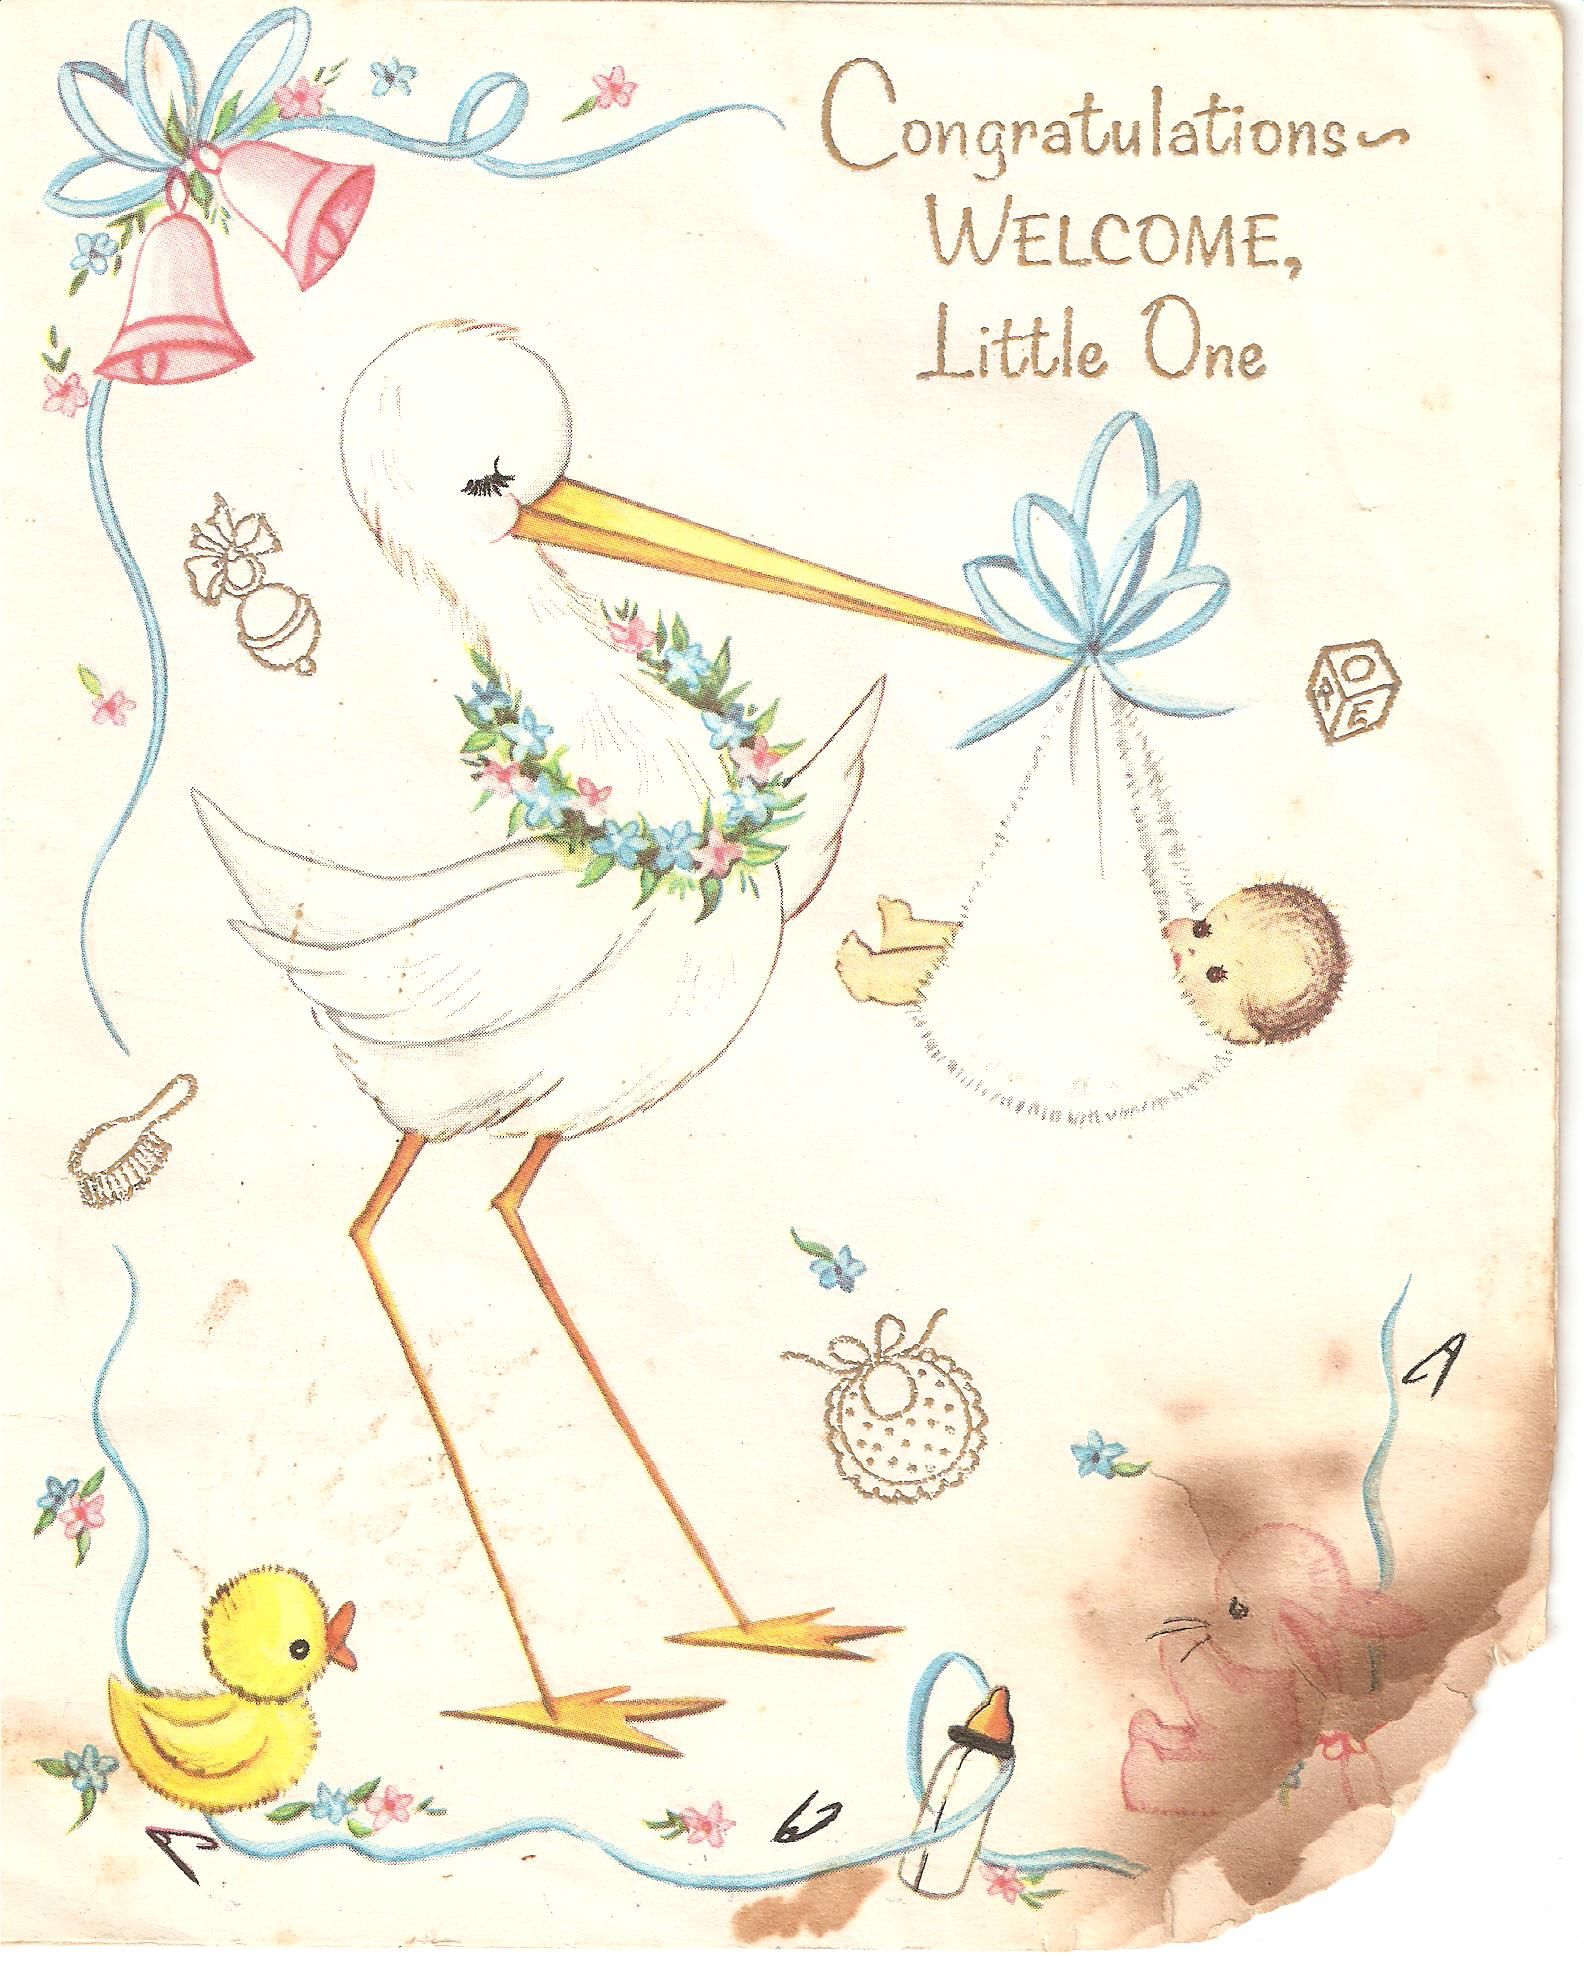 Baby greeting card circa 1960s new baby greetings pinterest baby greeting card circa 1960s kristyandbryce Gallery